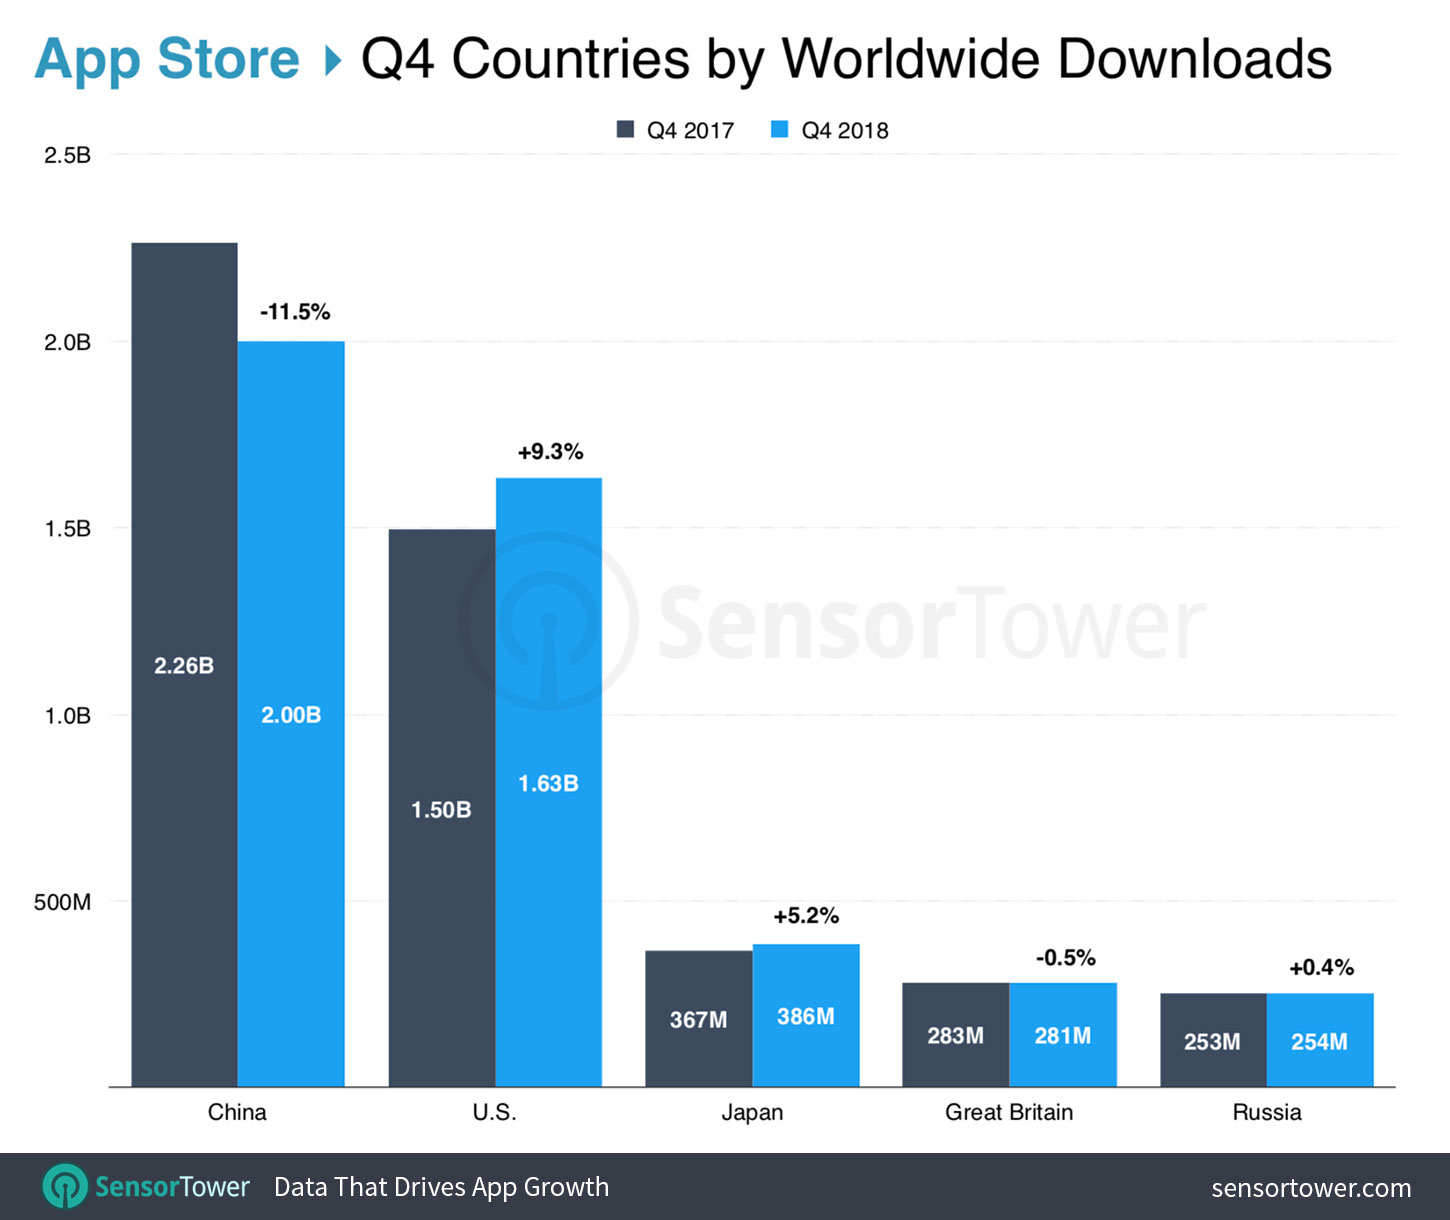 Top Countries by App Downloads in Q4 2018